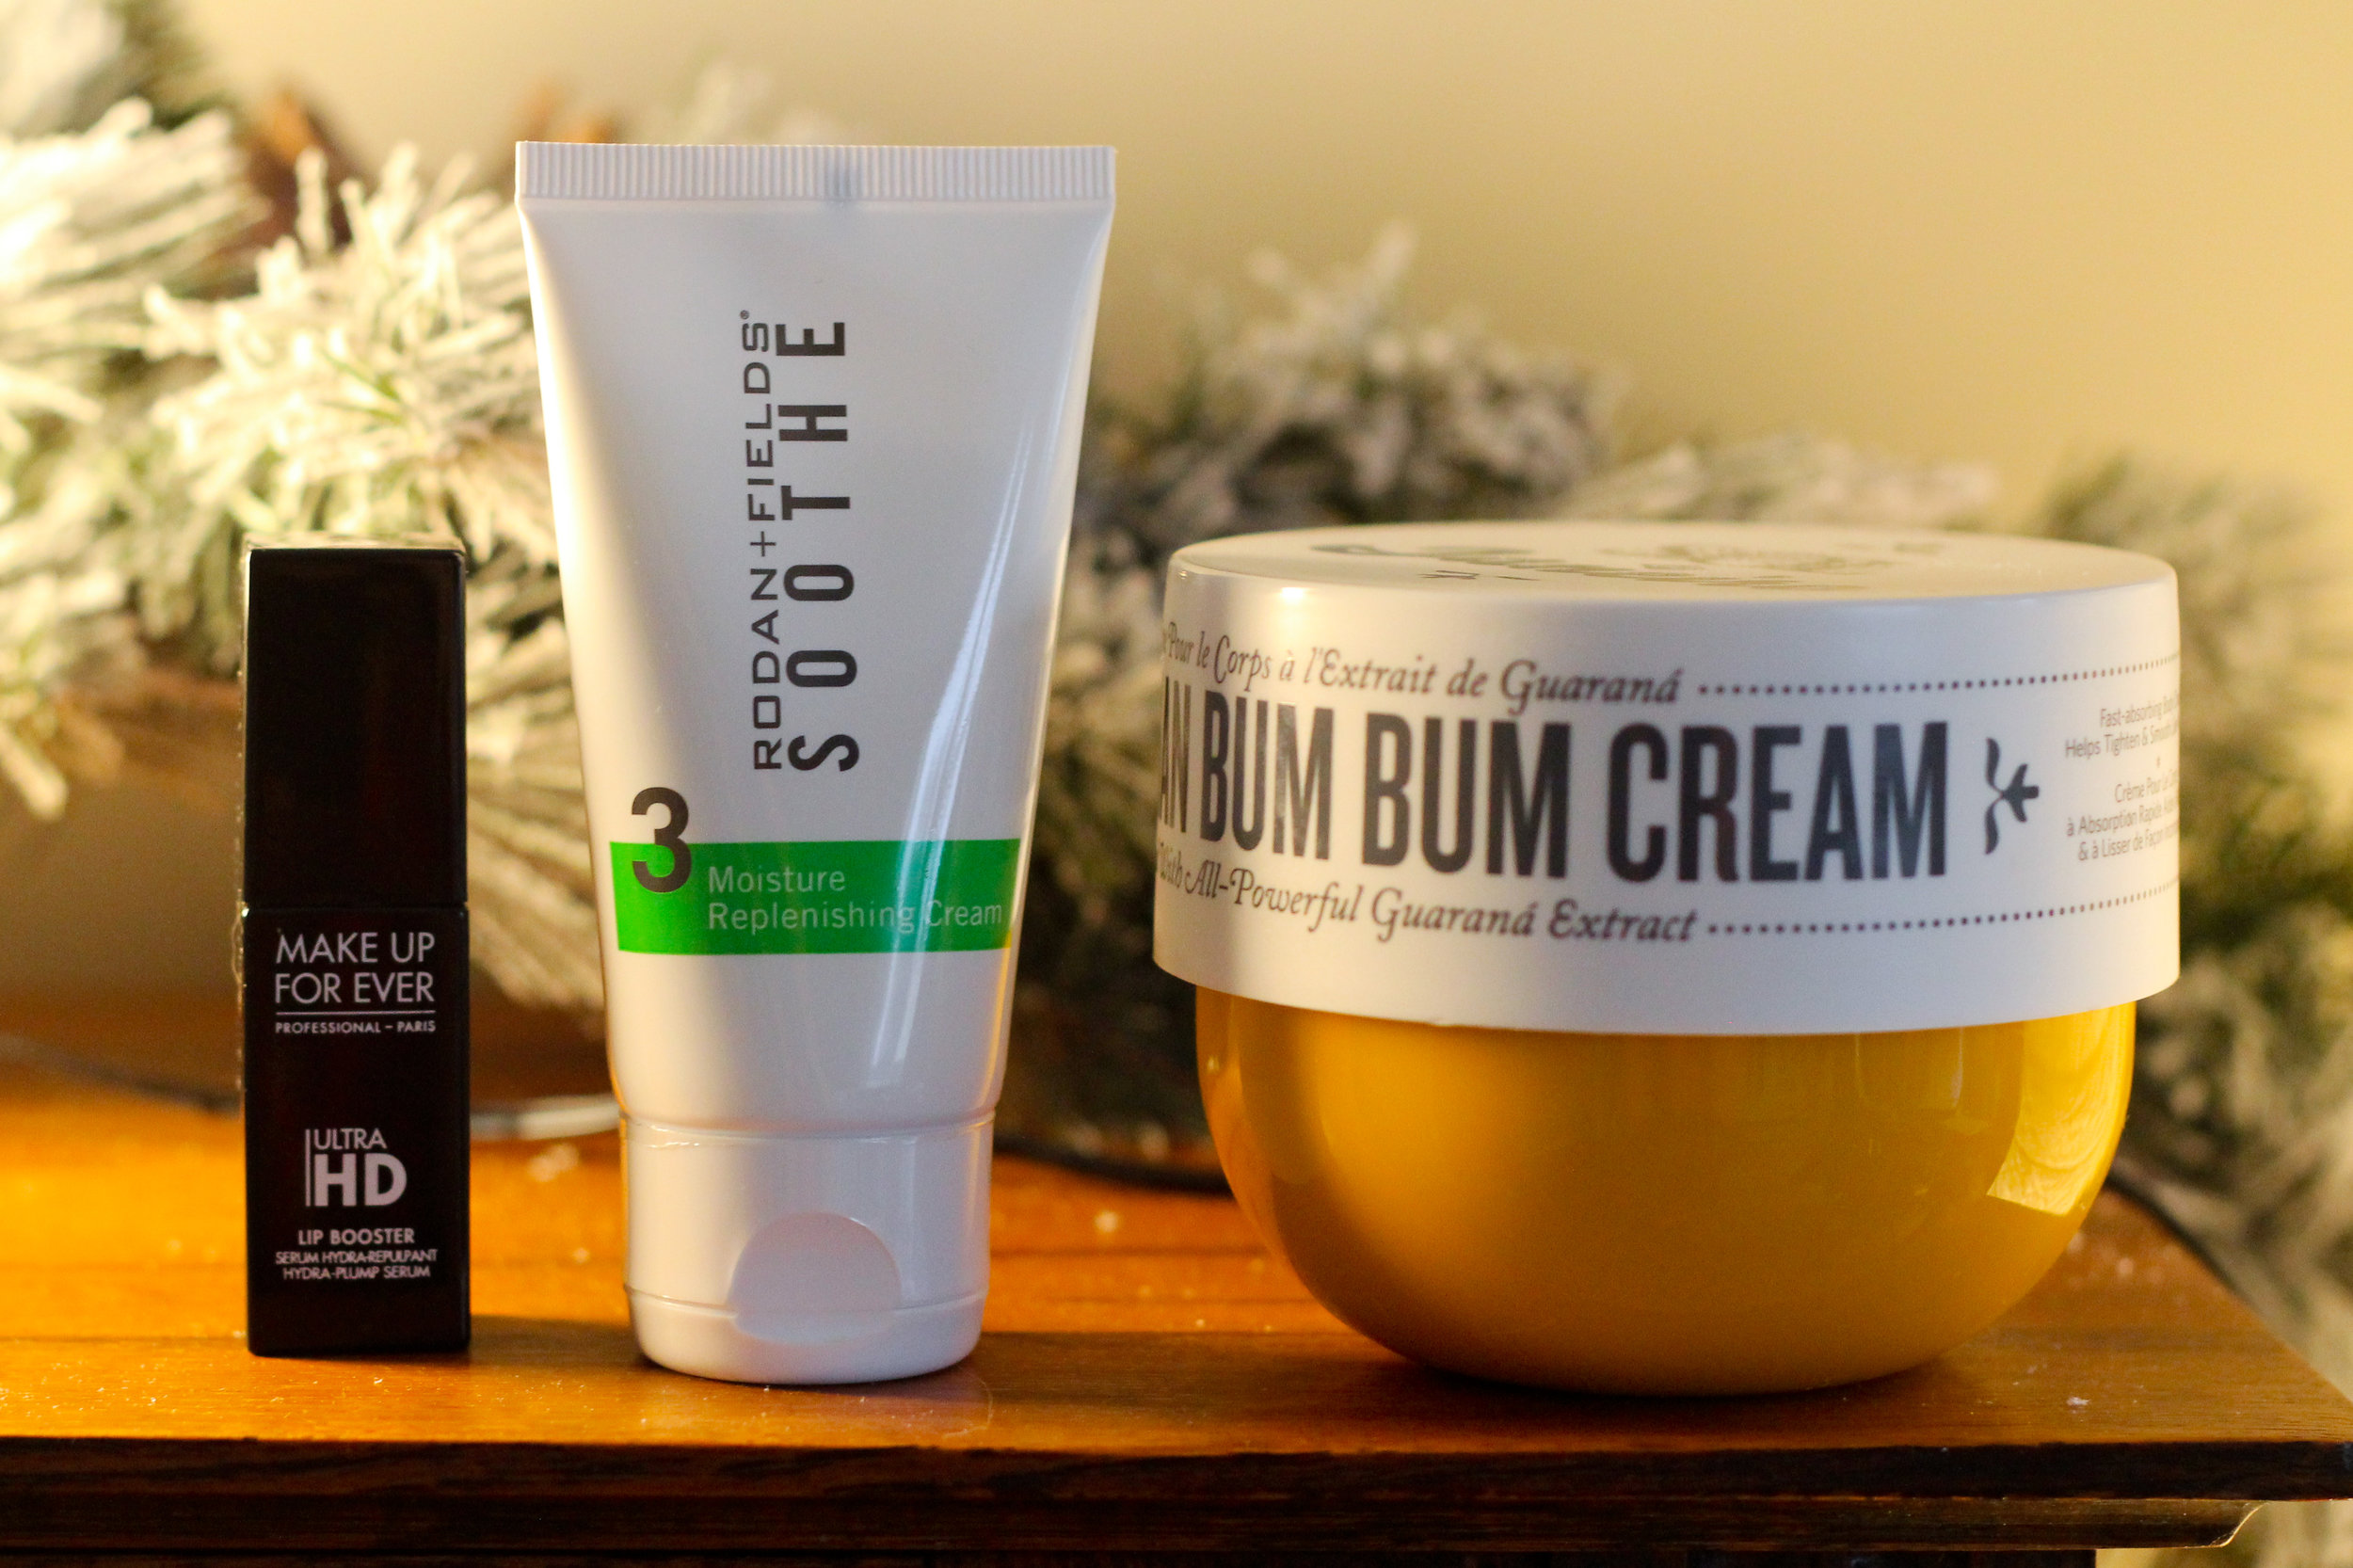 Left to right: Make Up For Ever Lip Booster in 01, Rodan + Fields SOOTHE Moisture Replenishing Cream, and Sol de Janeiro Brazilian Bum Bum Cream.